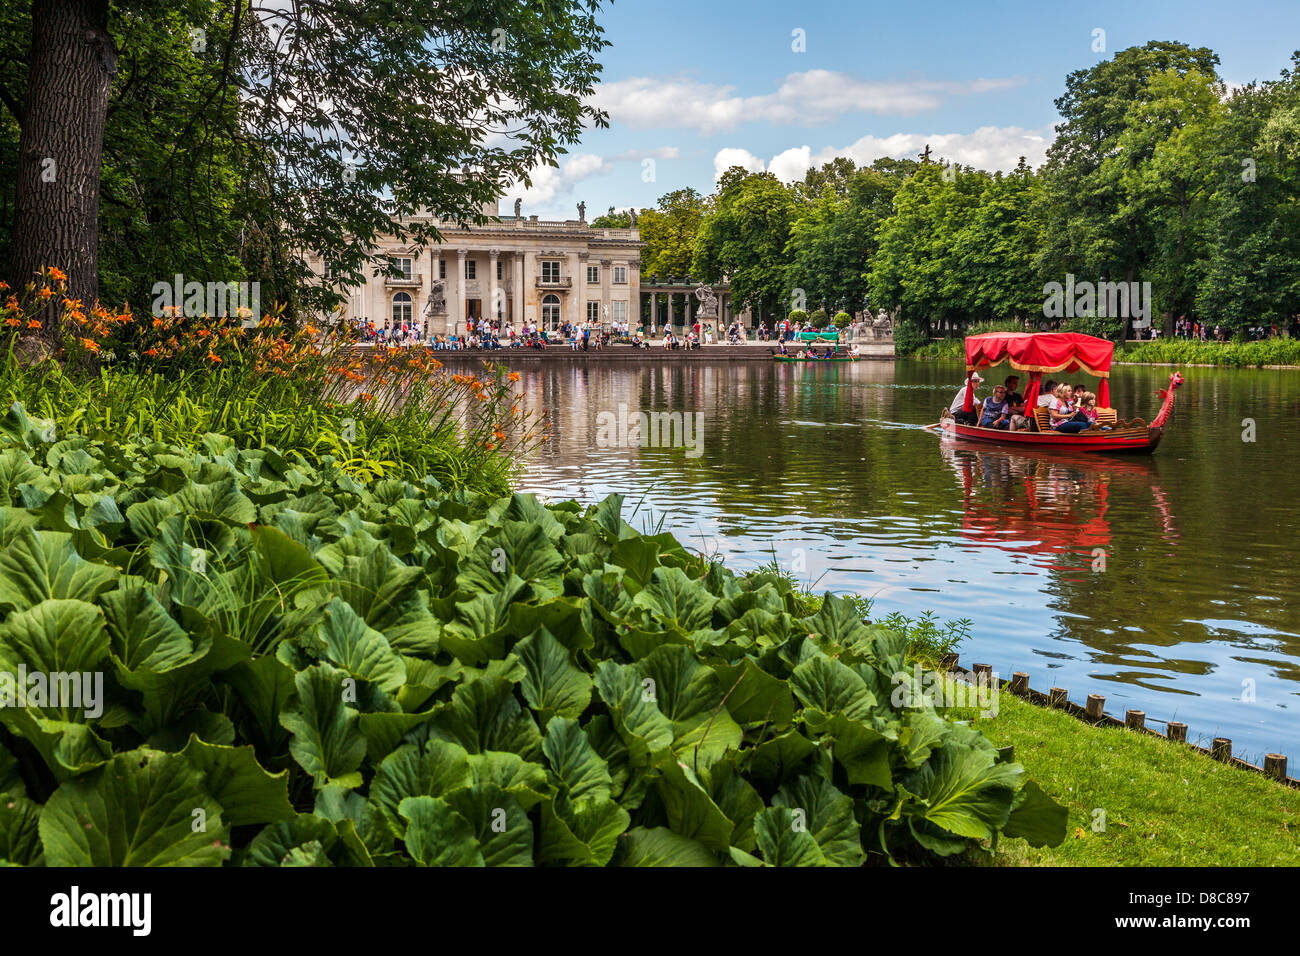 Tourists enjoy a gondola trip on the lake in Łazienki Park Łazienkowski, largest in Warsaw with the Palace in the - Stock Image